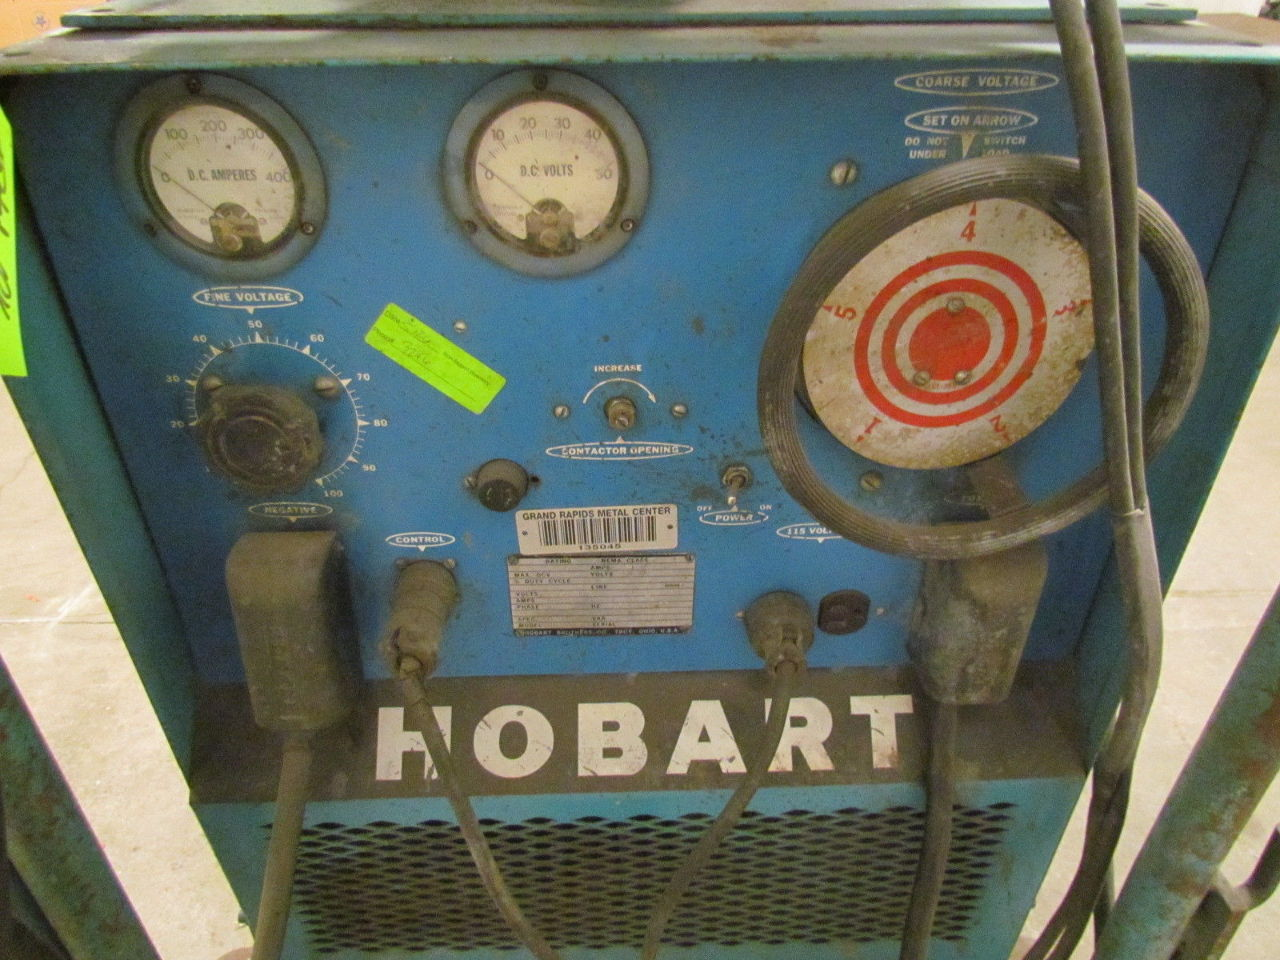 48546 hobart rc250 250 amp 3ph dc wire feed welder w cart cables gun 230 460 v 3ph 6 100 [ hobart mig 250 welder manual ] hobart ironman 250 500408 hobart beta mig 250 wiring diagrams at cos-gaming.co